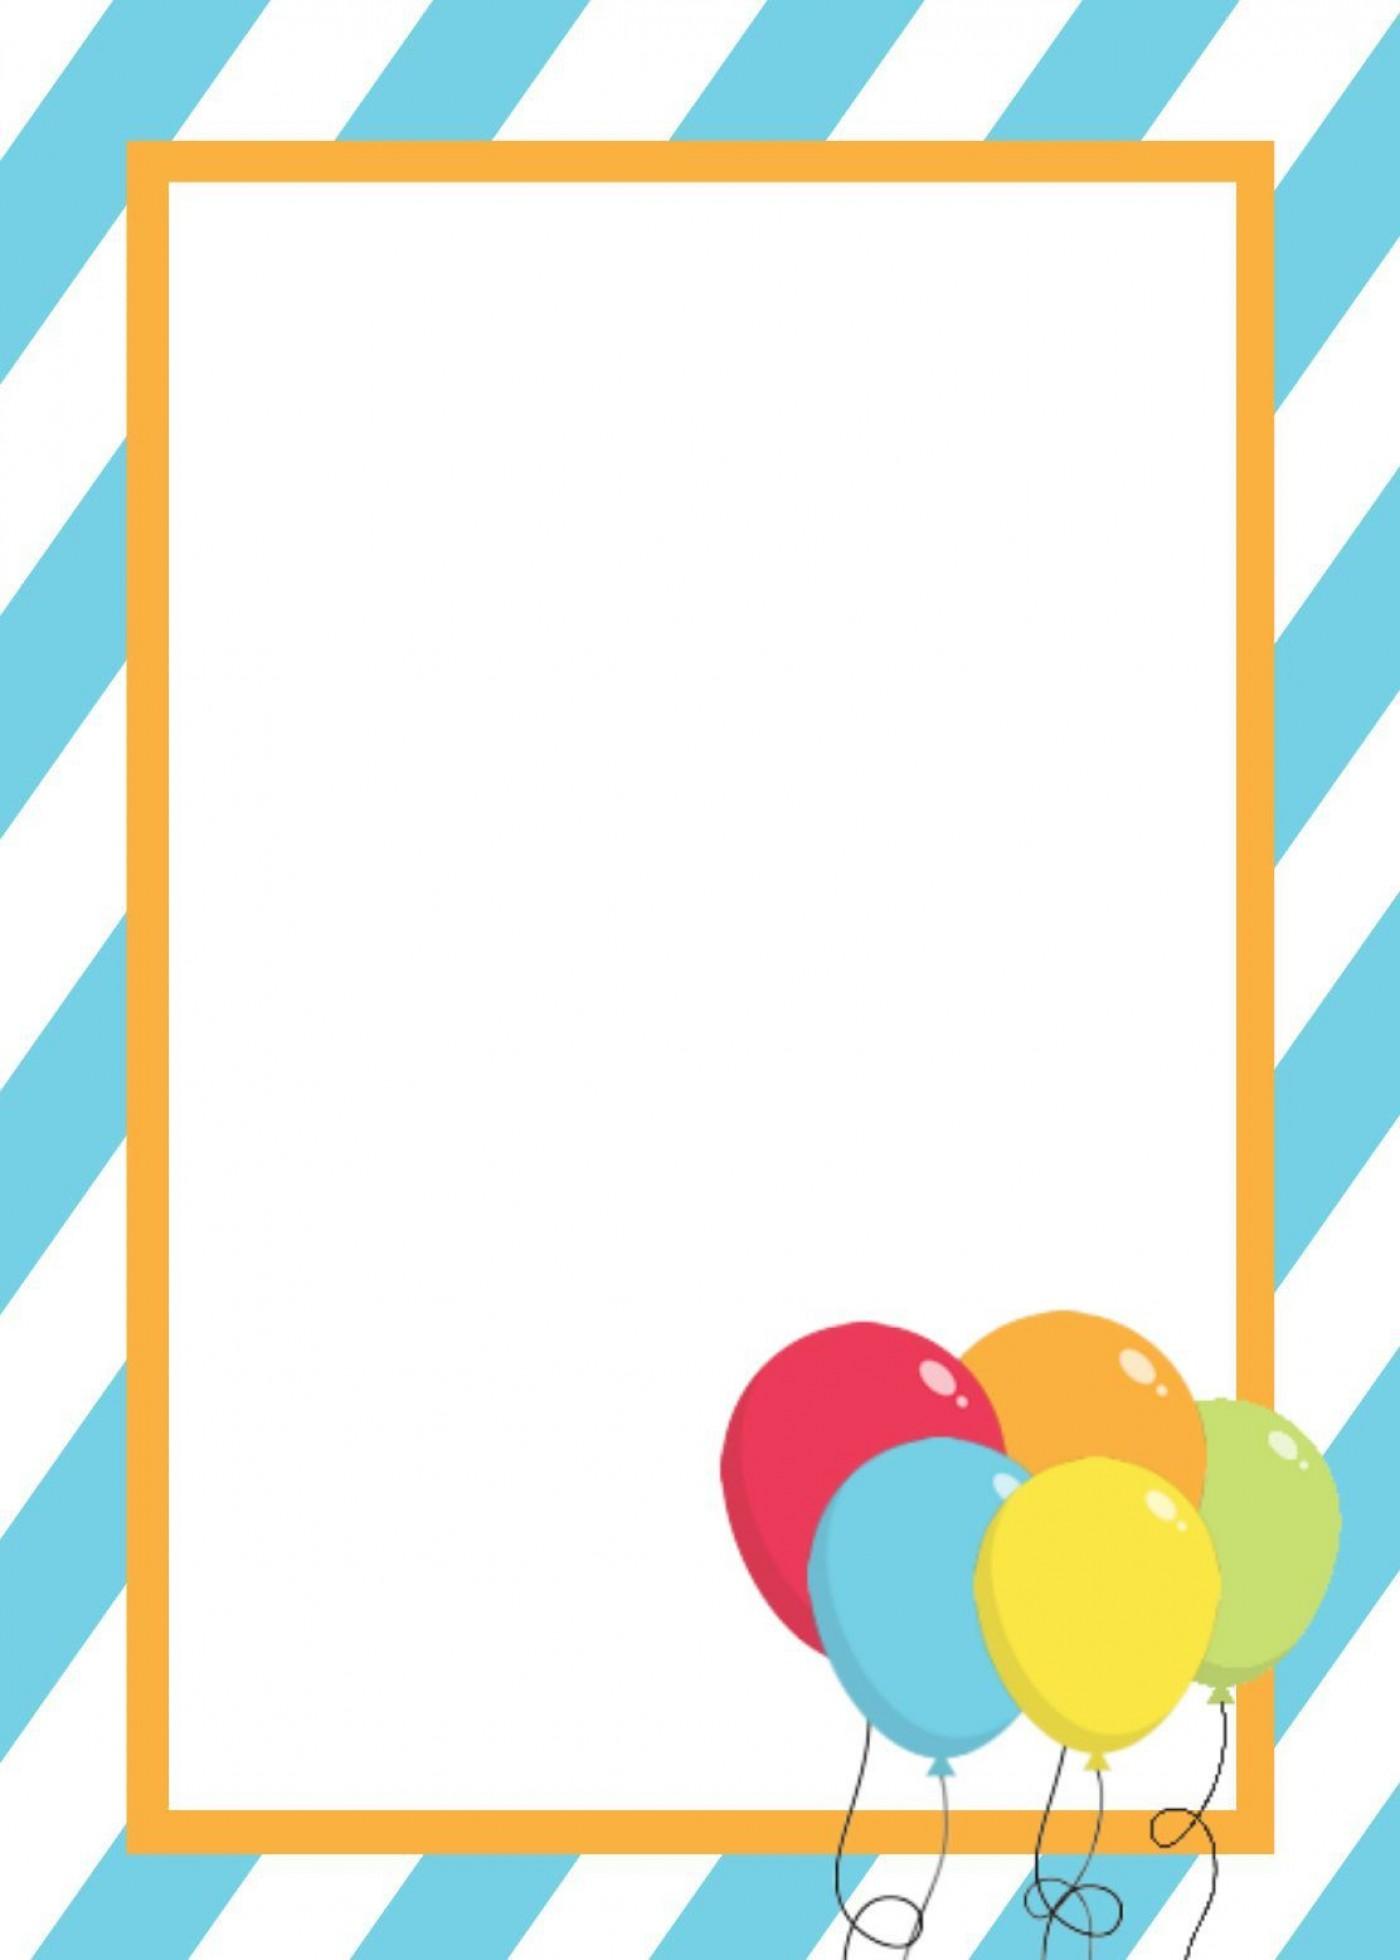 001 Incredible Free Birthday Party Invitation Template For Word Idea 1400